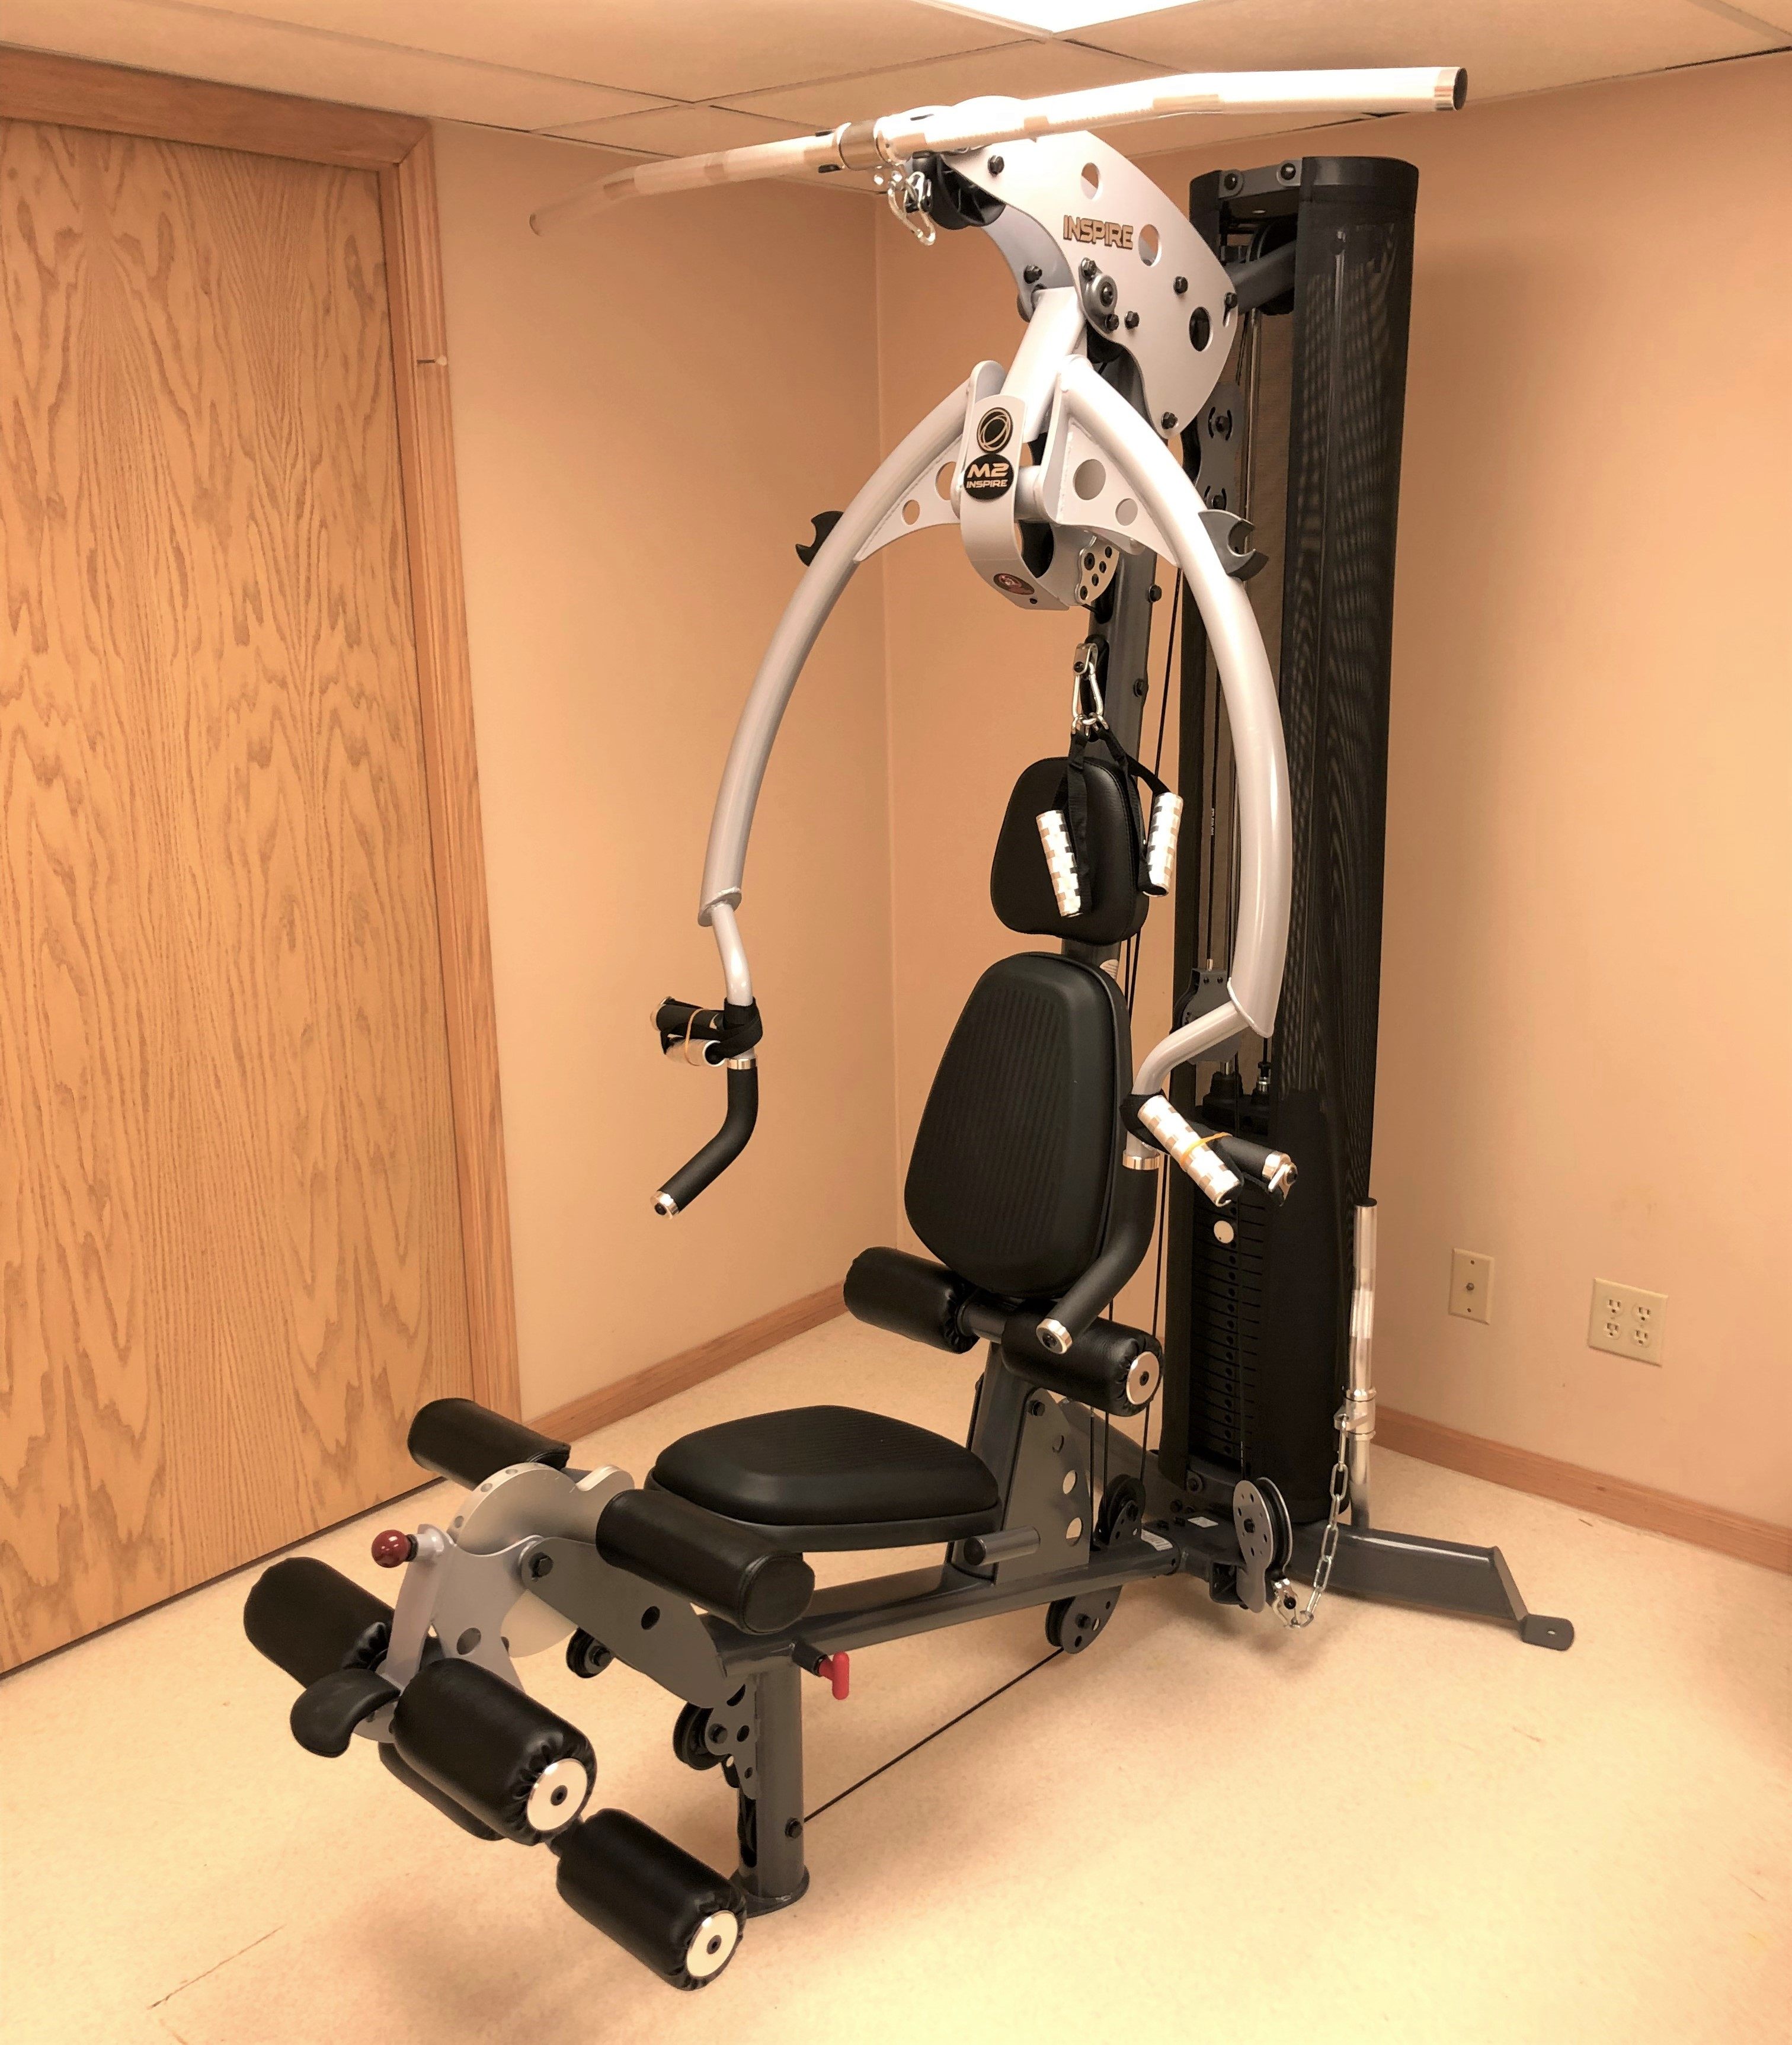 Delivery installation of fitness equipment in downers grove il